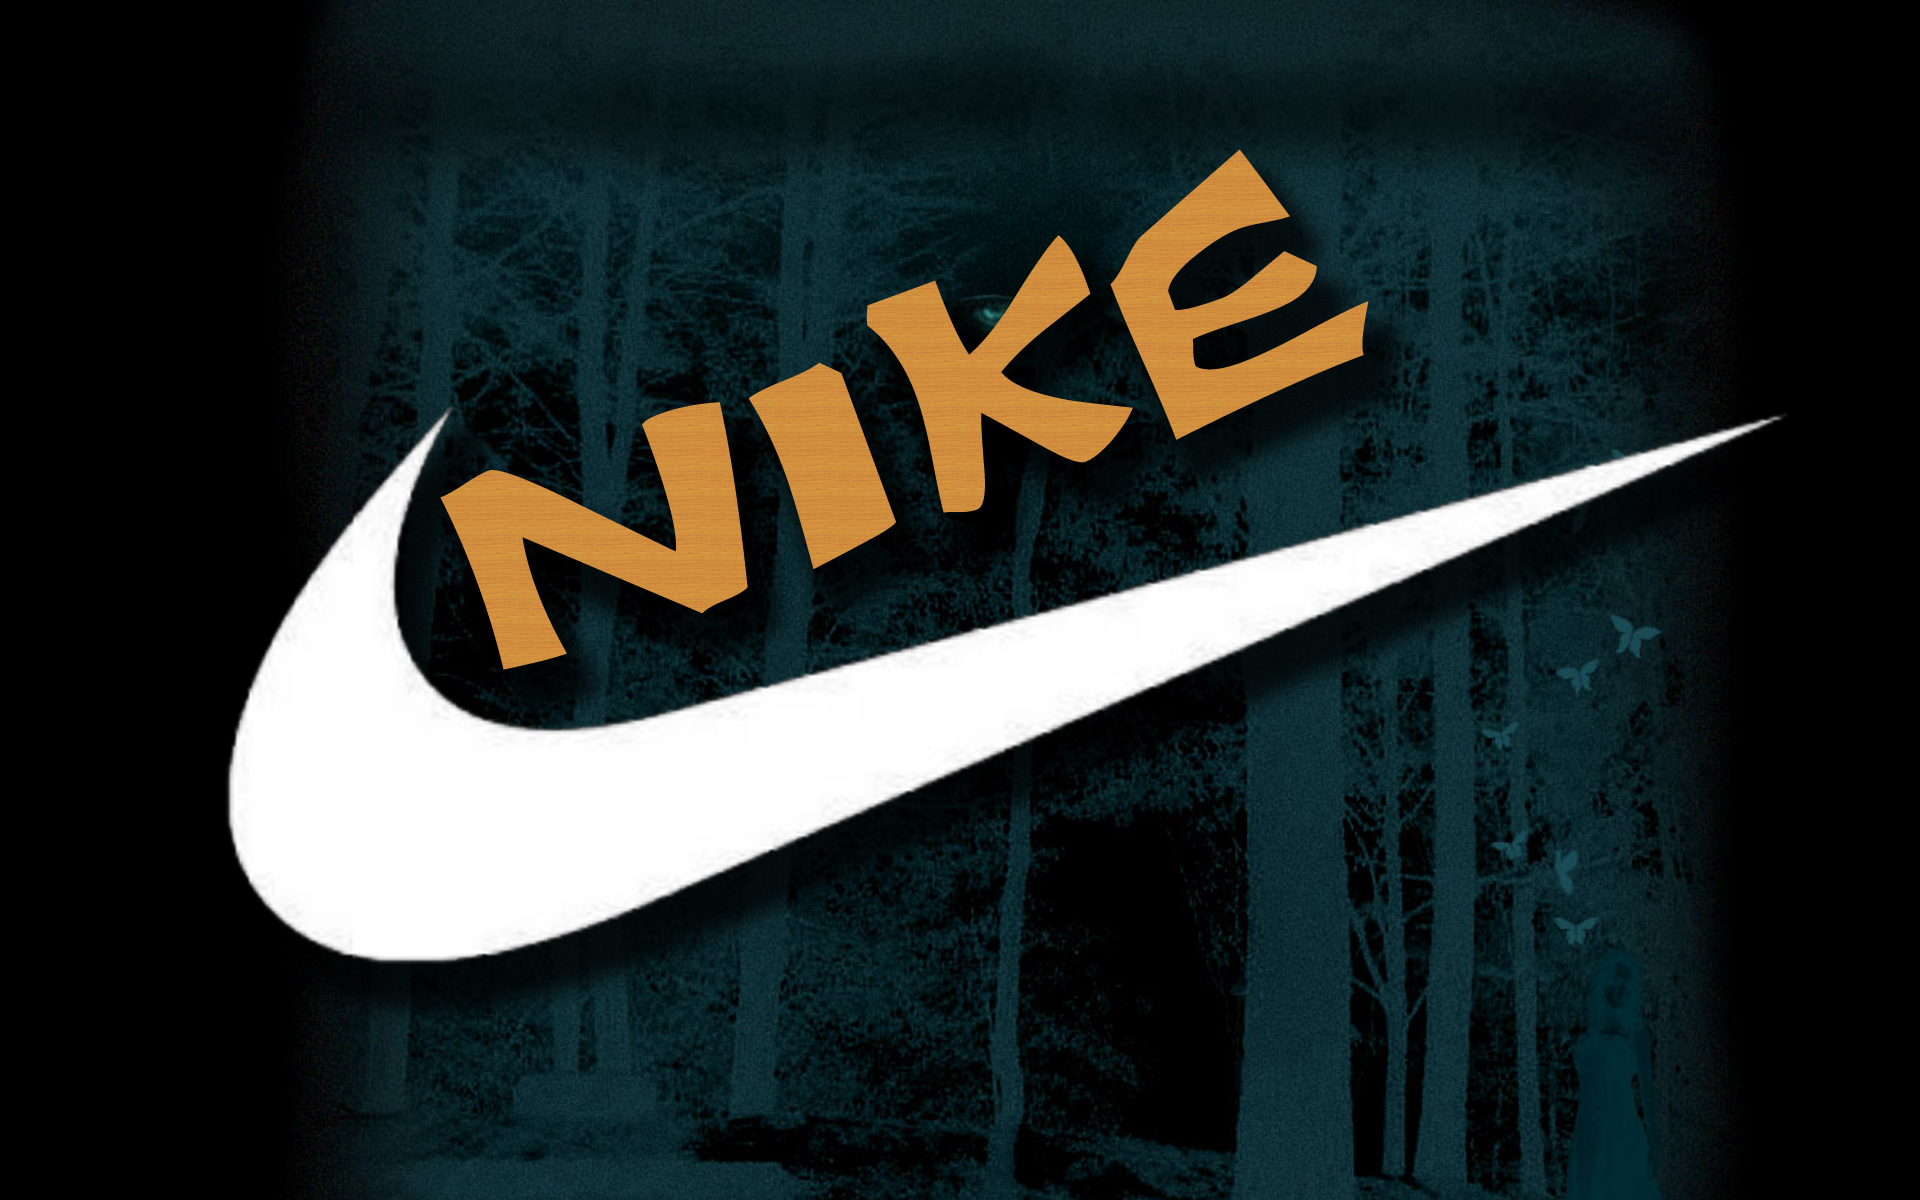 Nike Logo Cool Hd Wallpaper Download wallpapers page 1920x1200